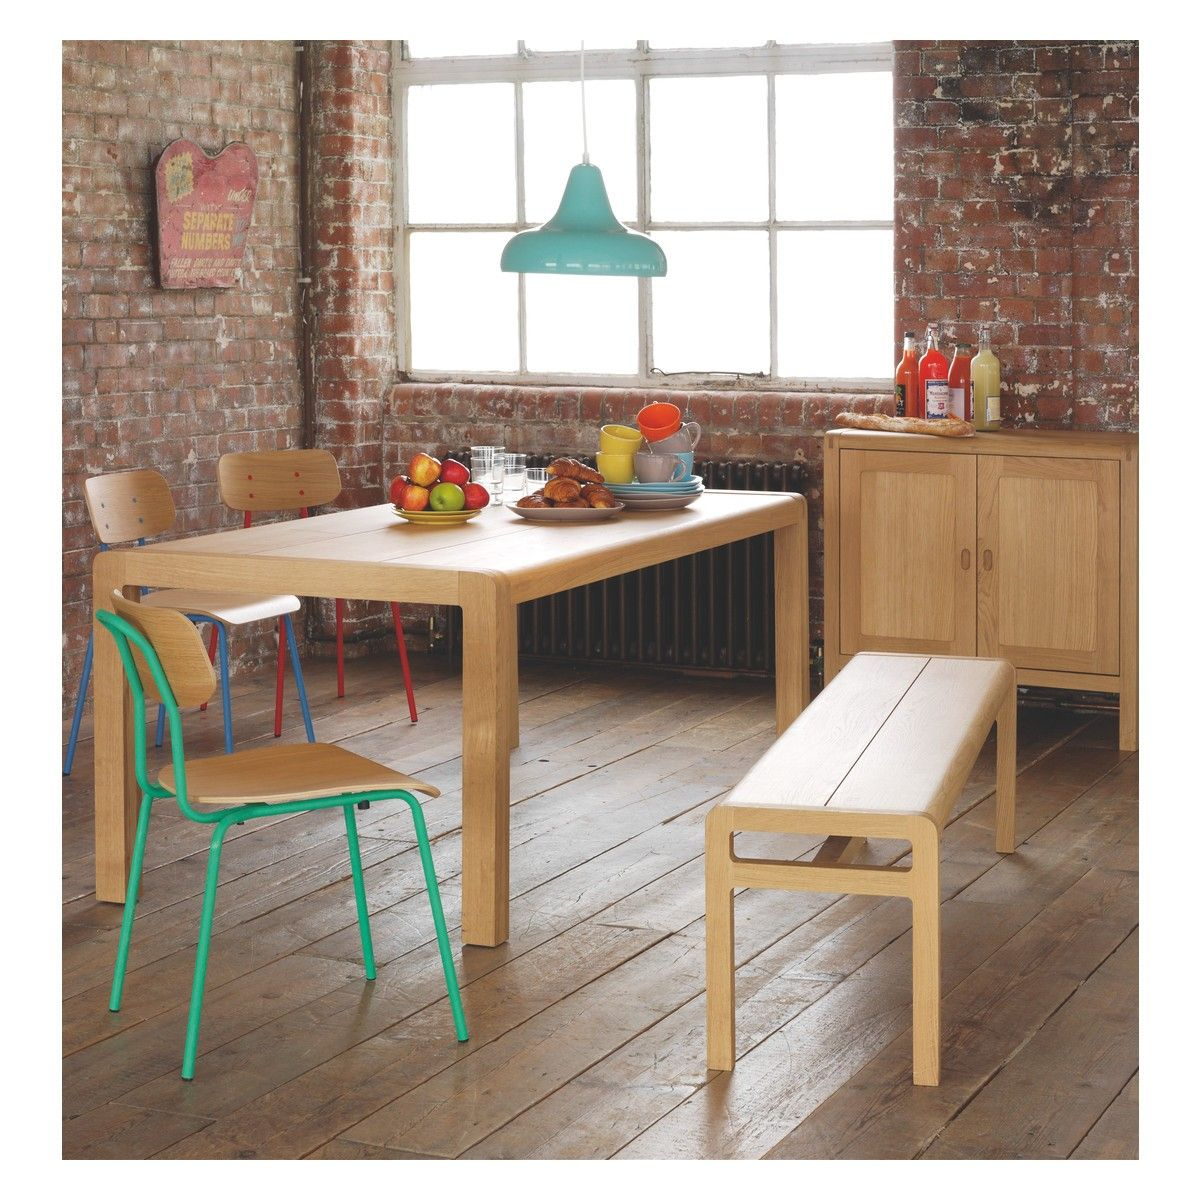 500GBP 90x74x150 50kg Laquered Solid Oak RADIUS 6 Seat Dining Table